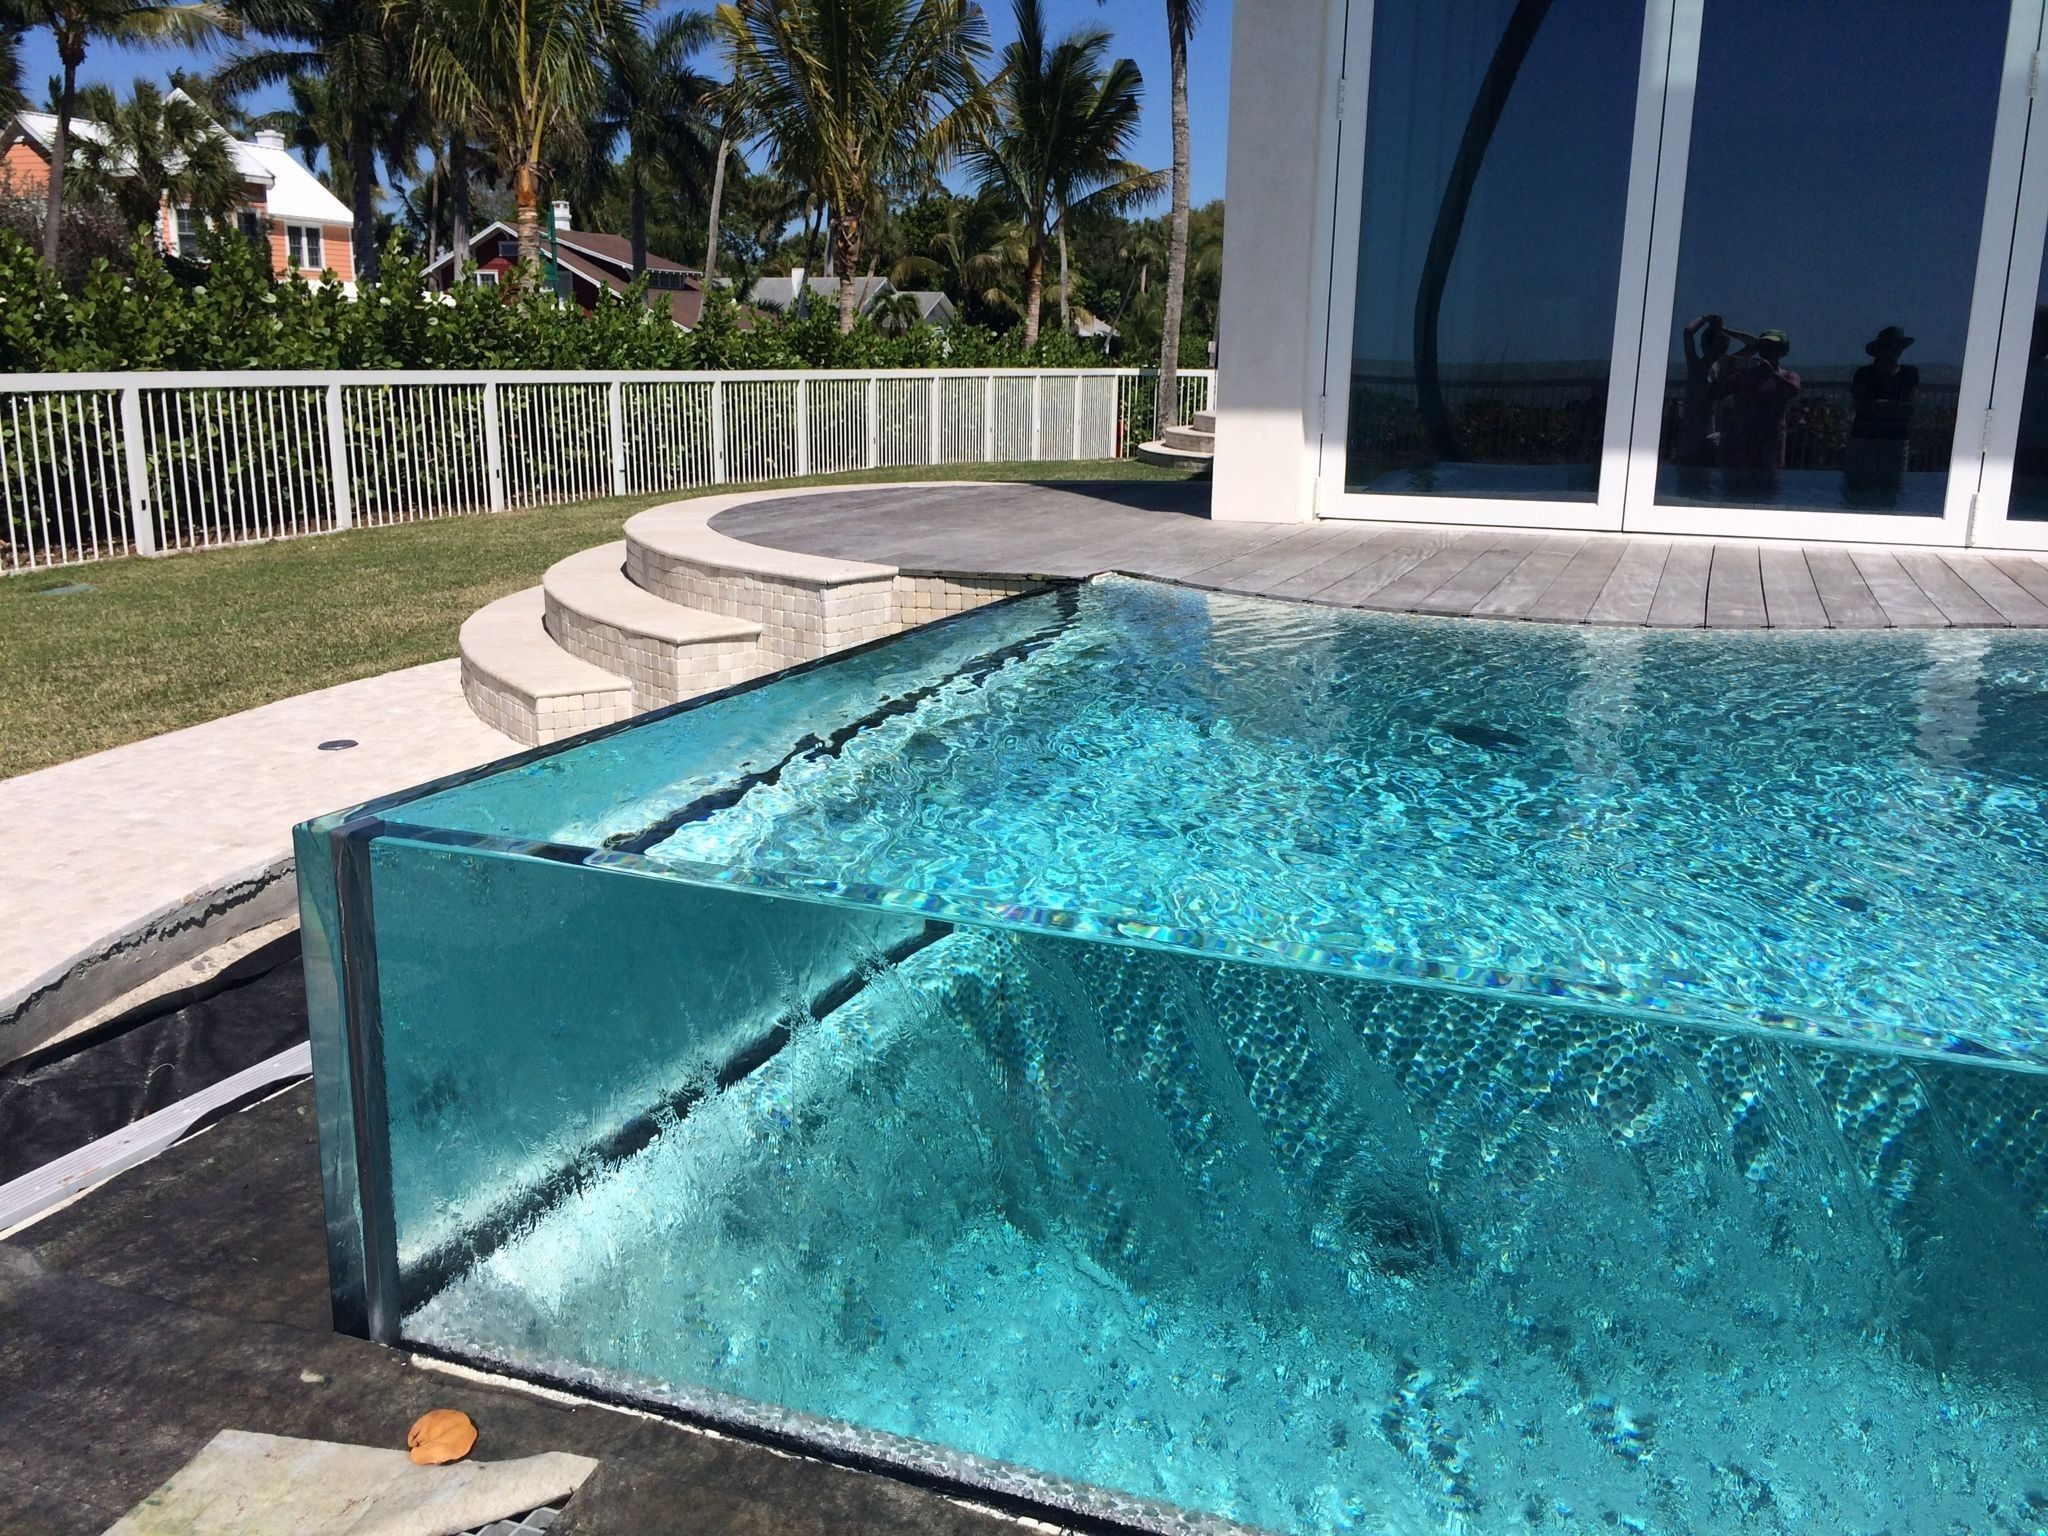 Pool design modern swimmingpooldesignspictures architecture in 2019 swimming pools pool - Luxury above ground pools ...